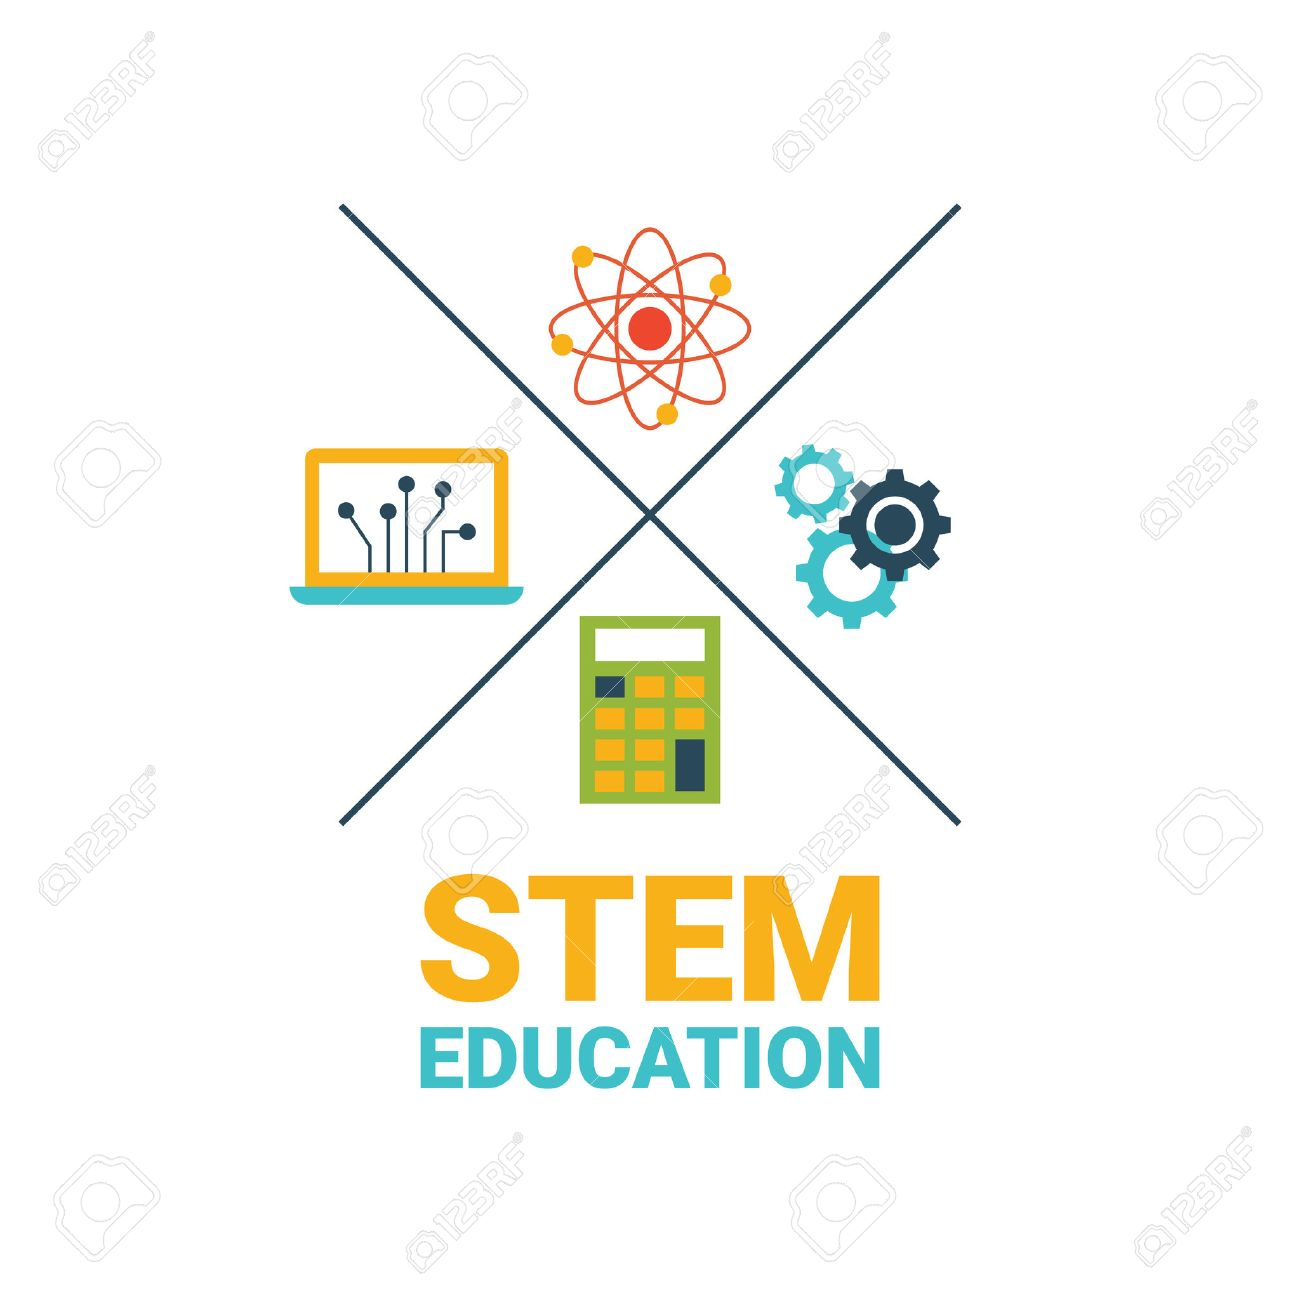 STEM - science, technology, engineering and mathematics badge concept with icon in flat design - 53556477